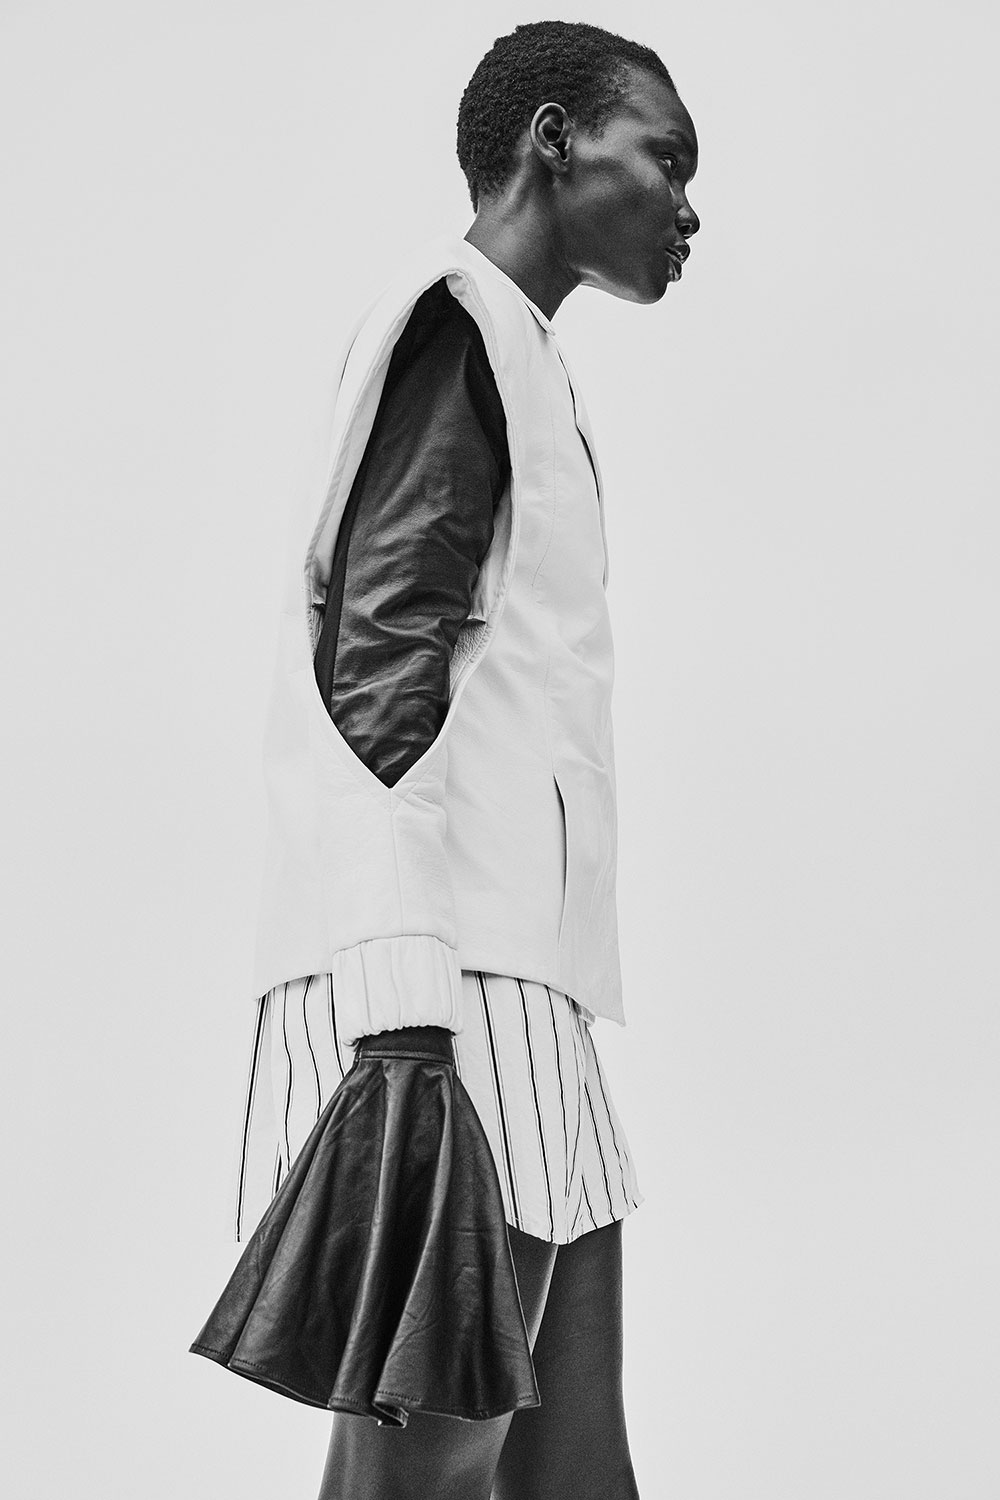 Black and white photo by Lauren Loncar of model Adot for MONROWE magazine